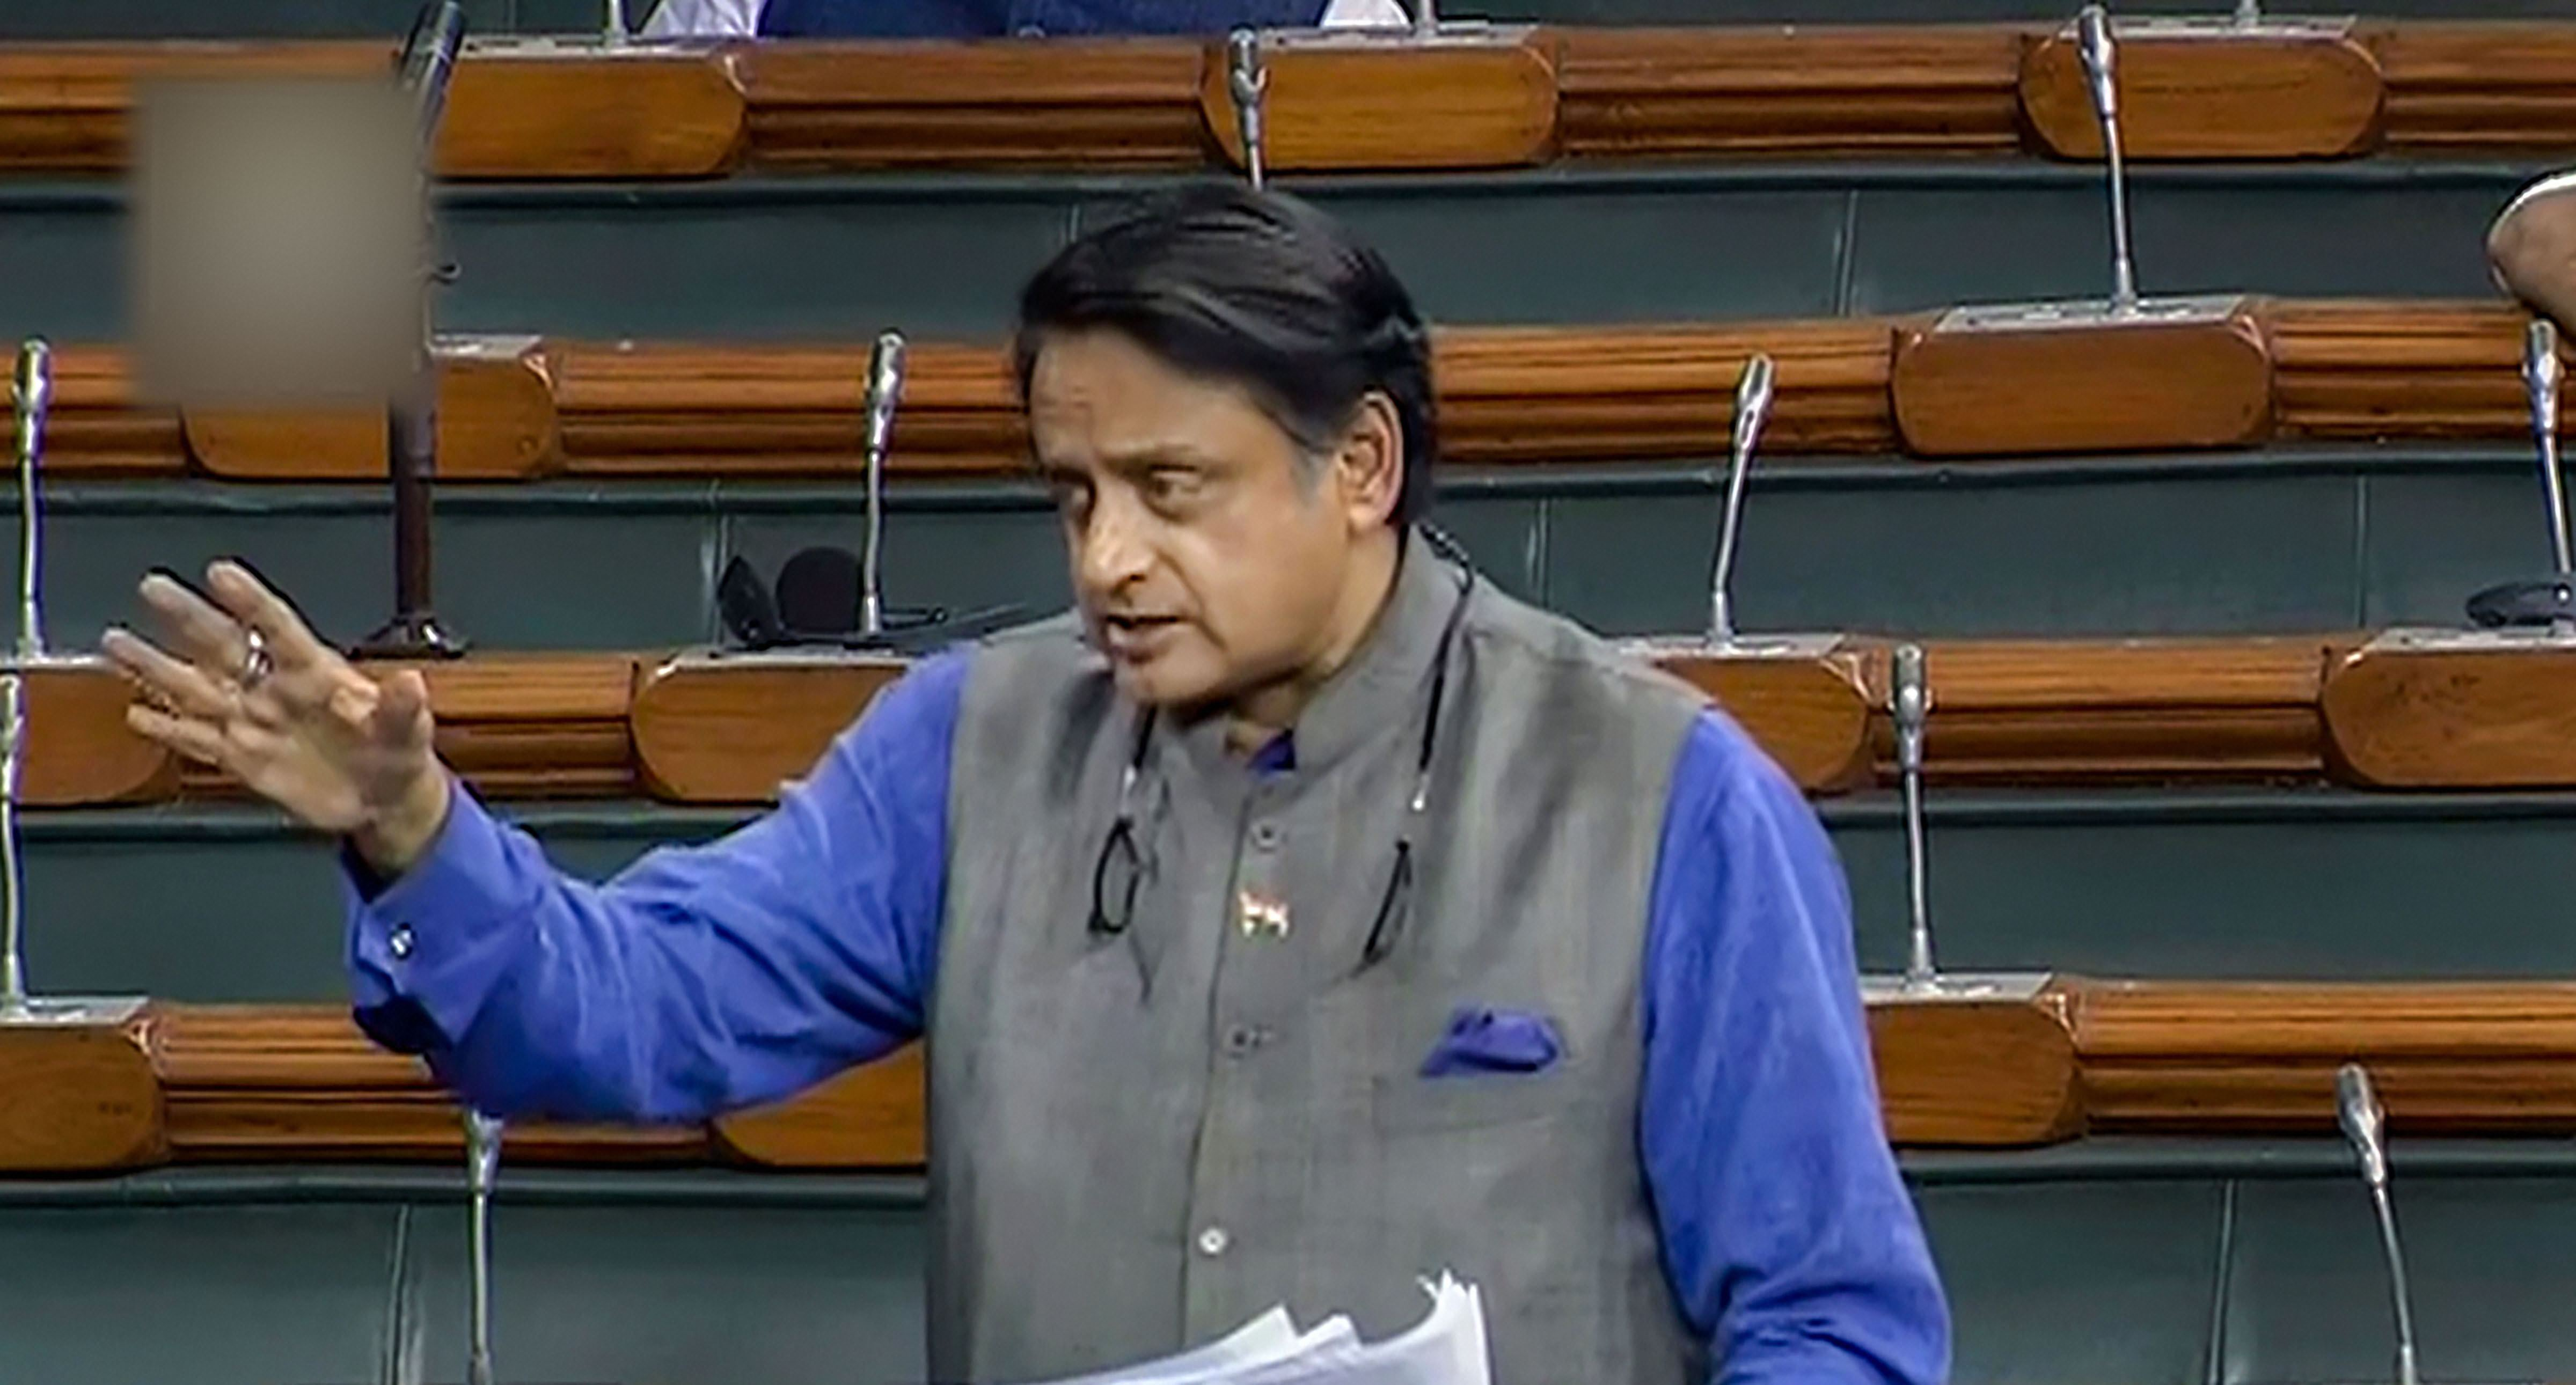 Congress member Shashi Tharoor speaks in the Lok Sabha during the ongoing winter session of Parliament, in New Delhi, Wednesday, December 4, 2019.